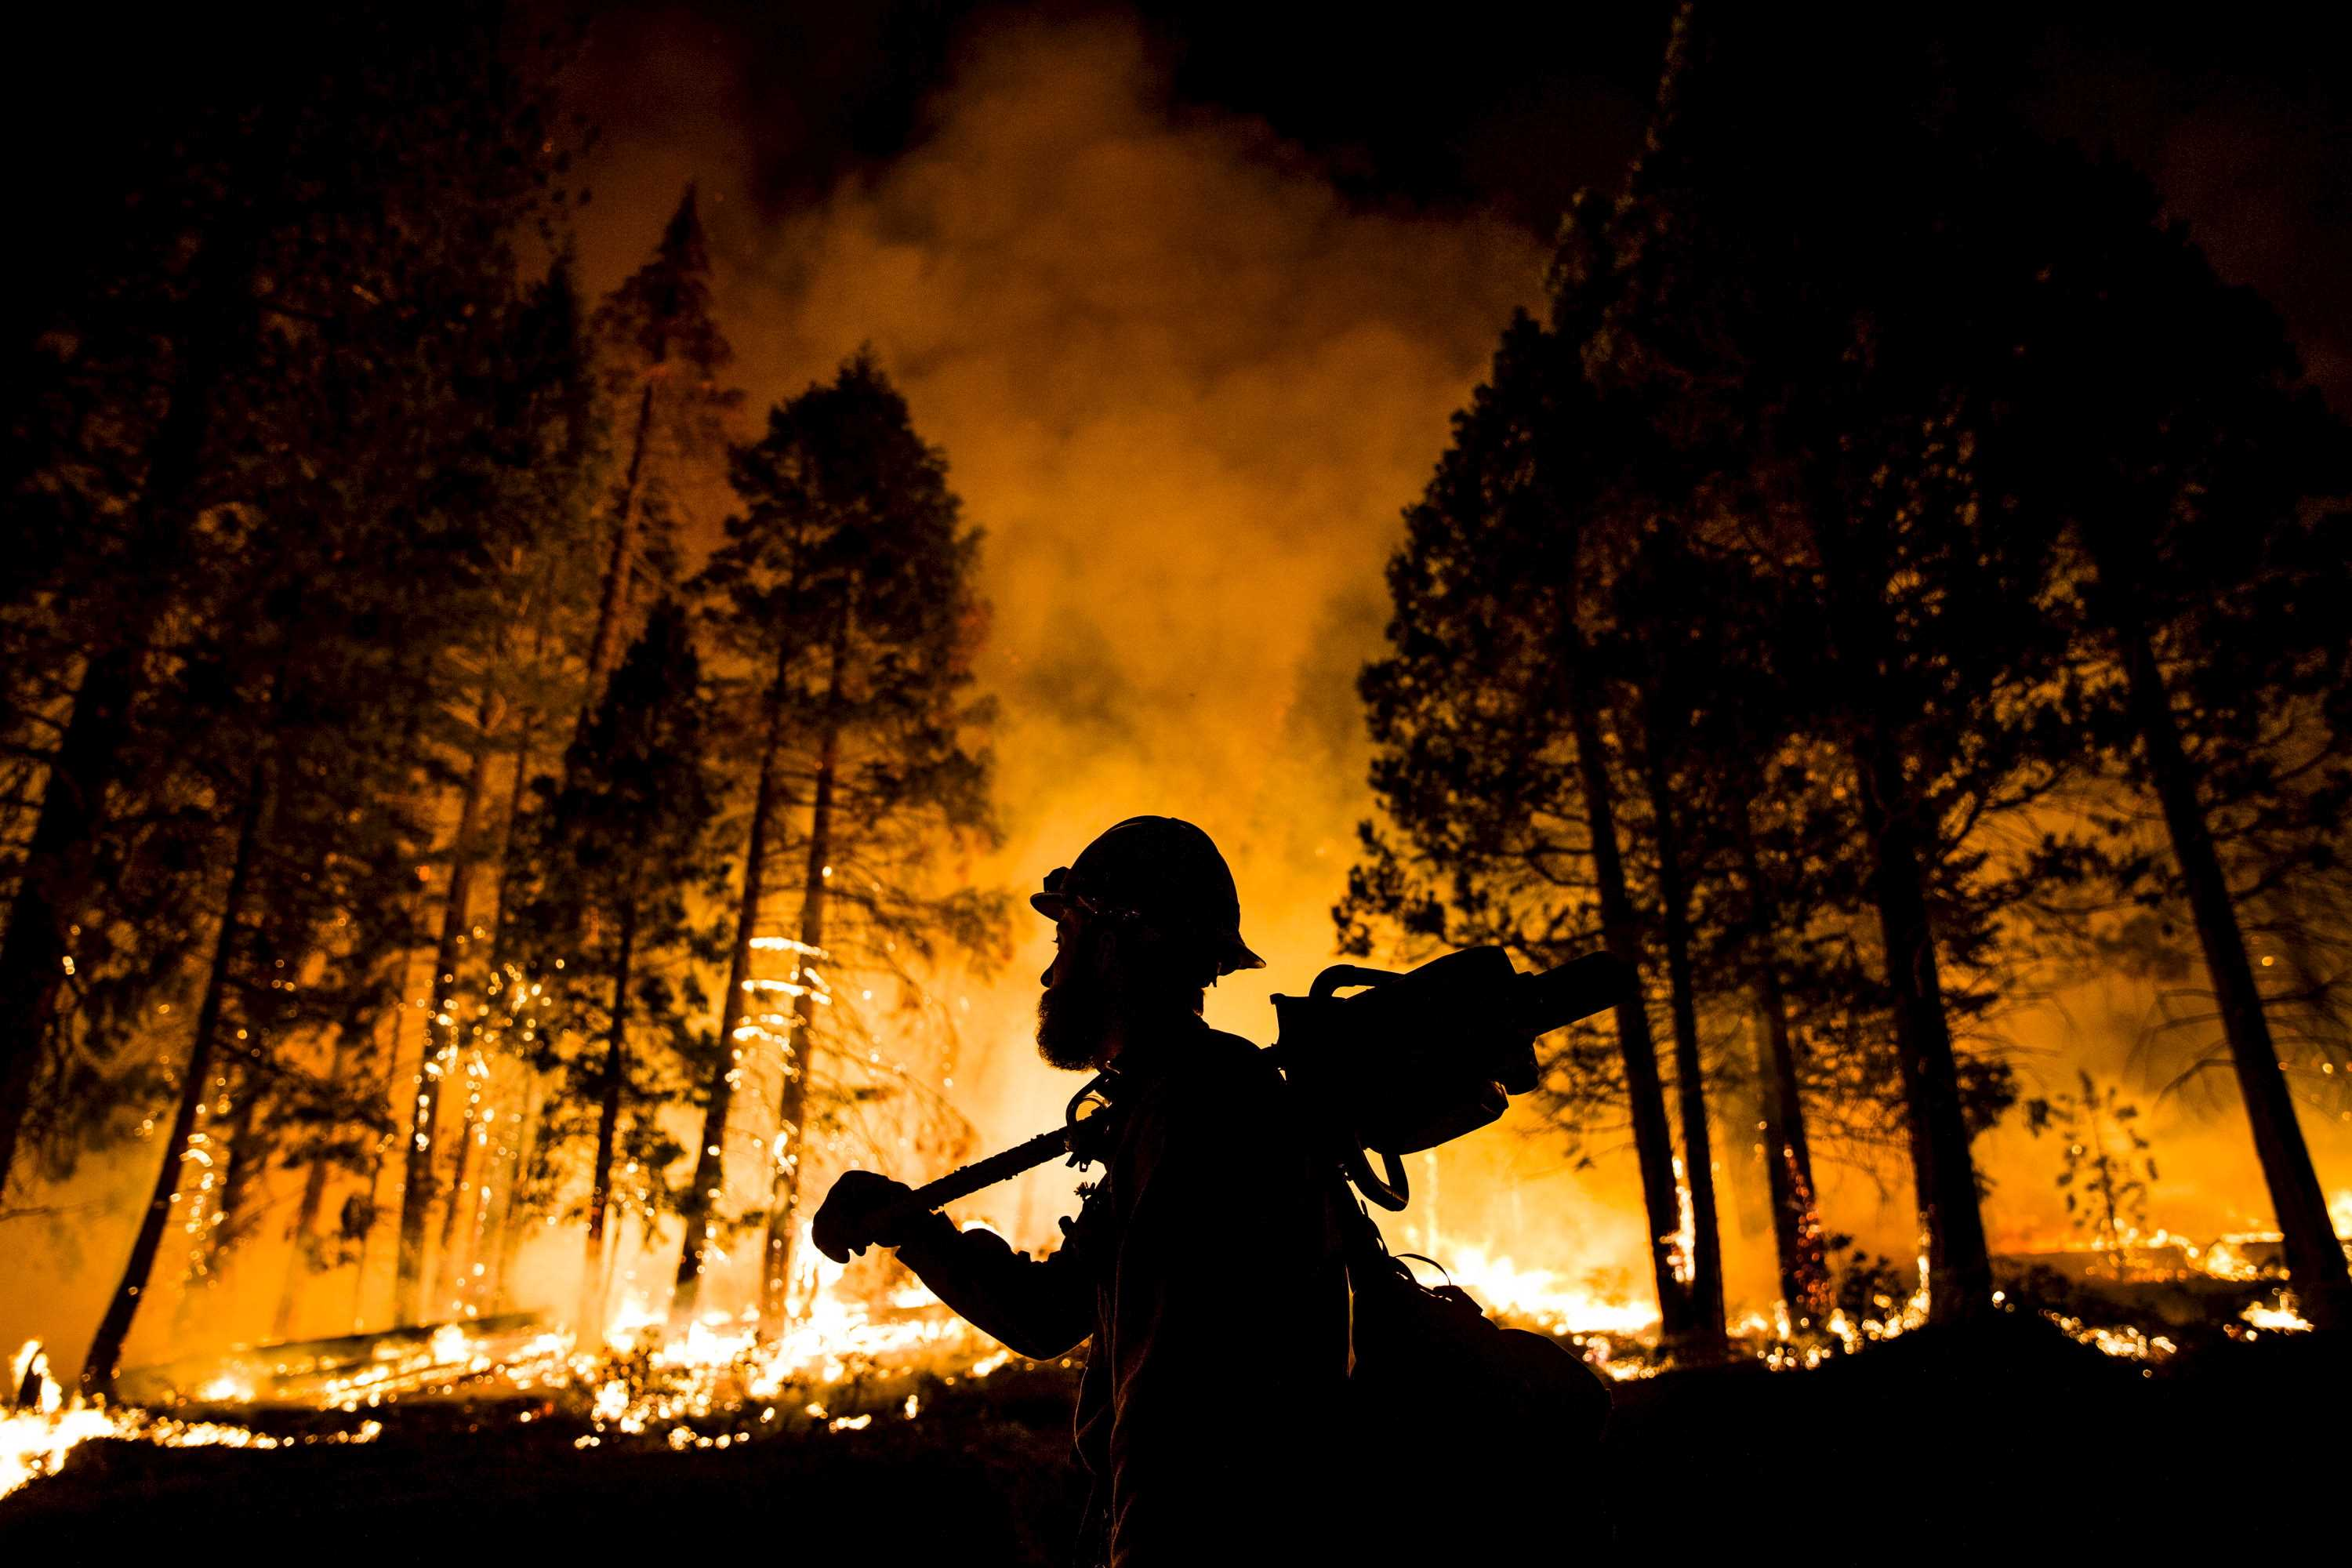 Natural disaster preparedness highlights risky, but manageable wildfires